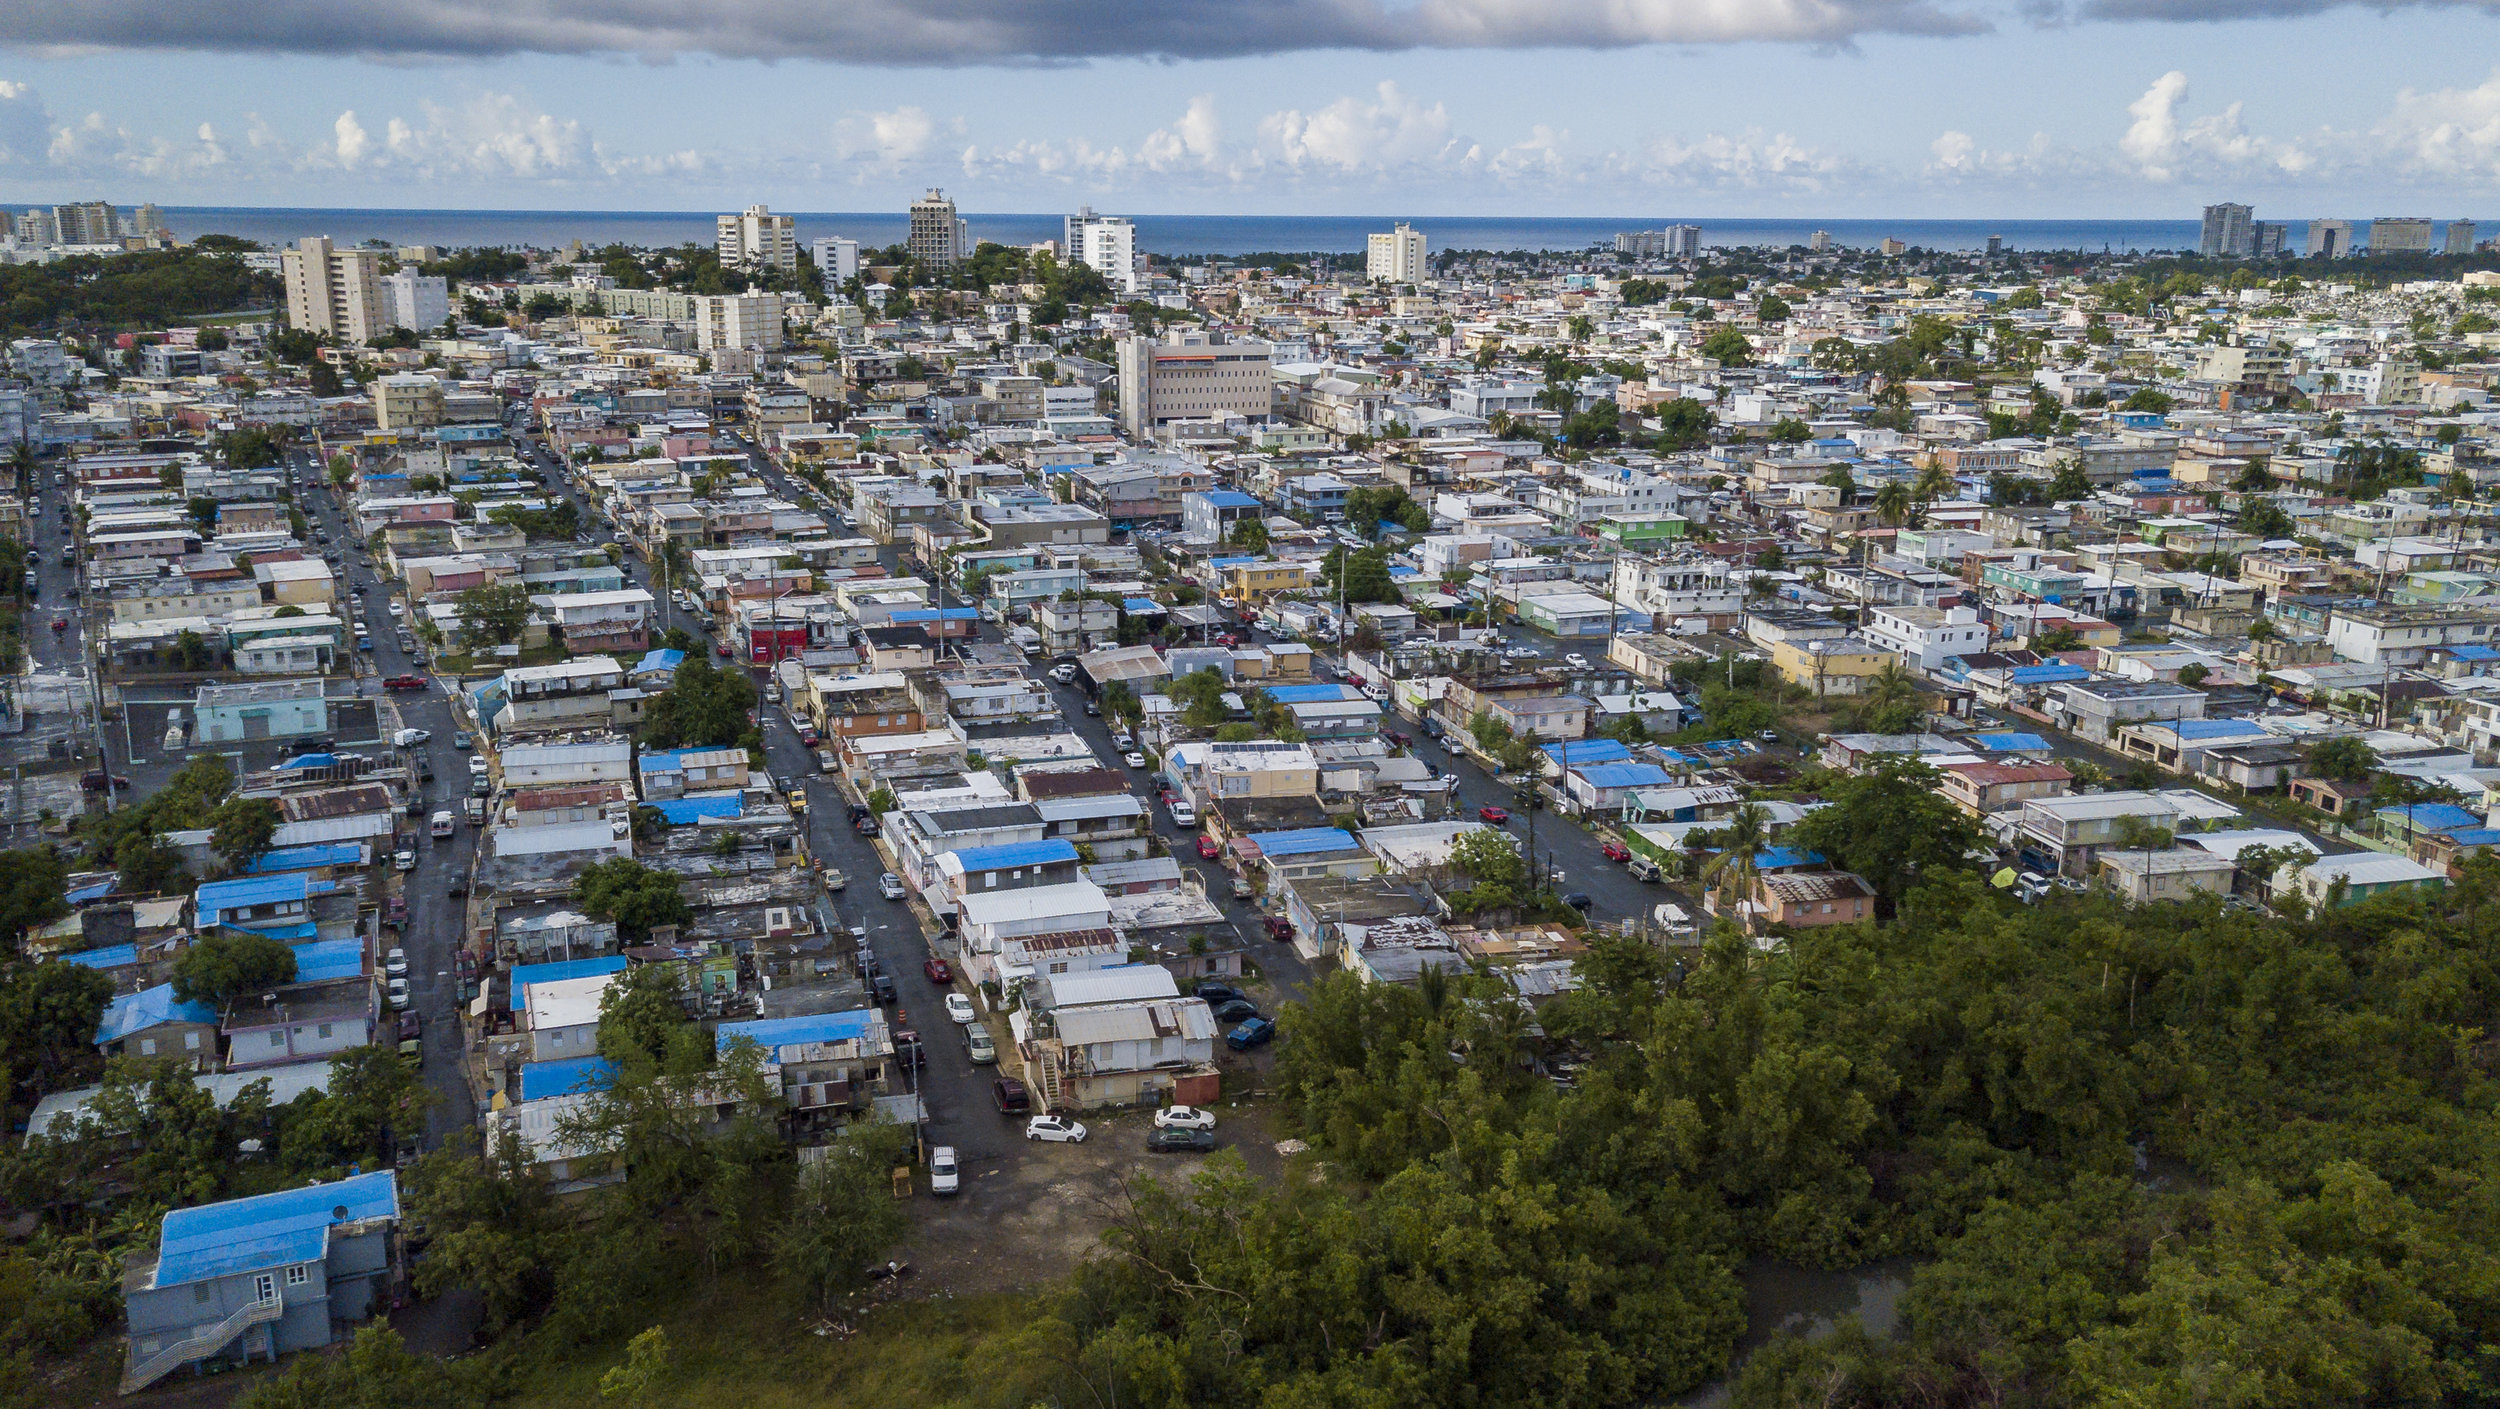 Many homes in the Caño Martin Peña communities in San Juan, Puerto Rico still lack permanent roofs on August 24, 2018 a year after Hurricane Maria.